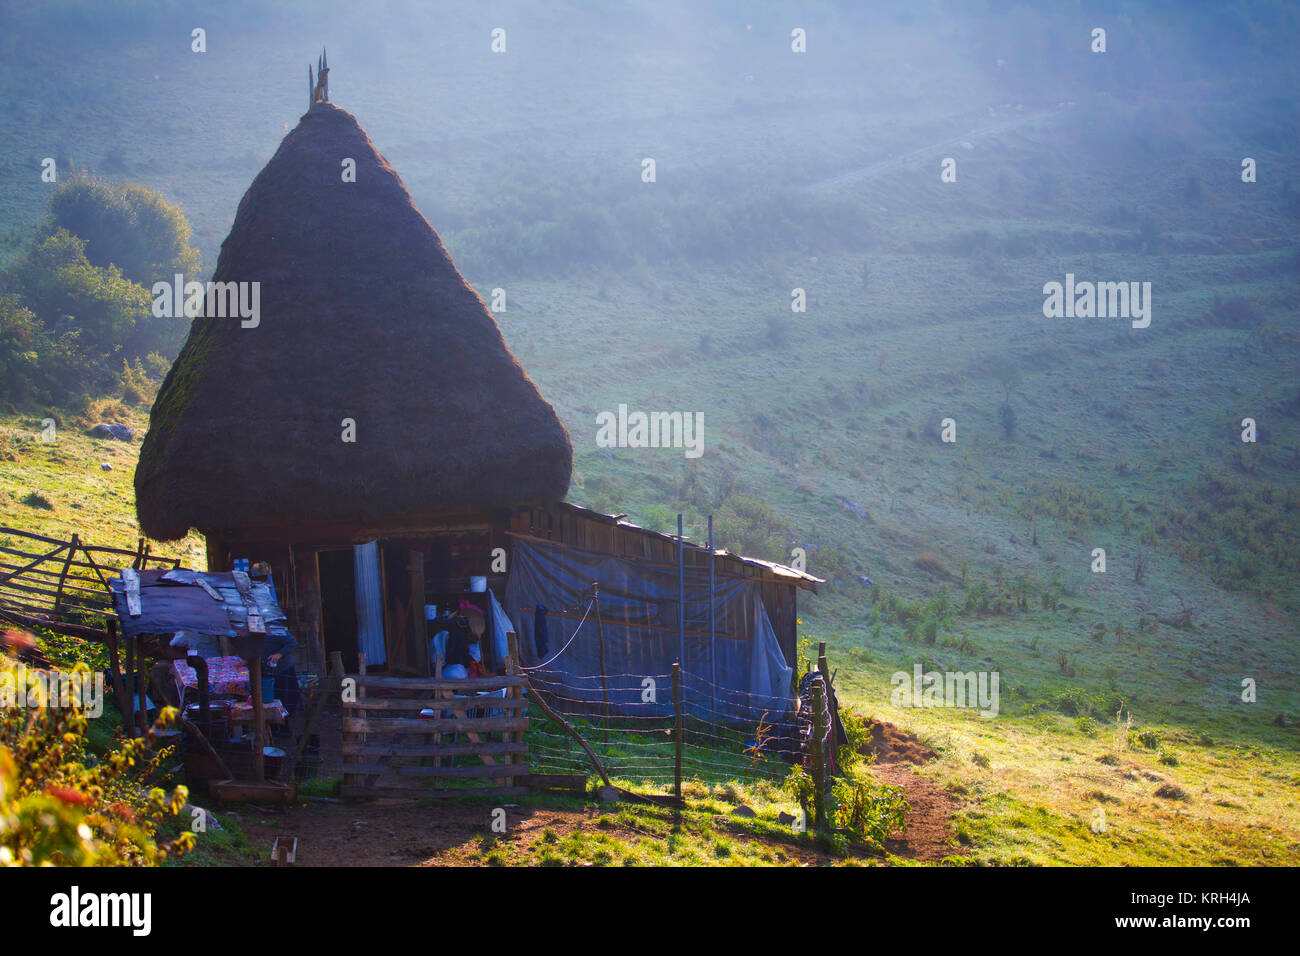 Wooden cottage in the mountains - Stock Image